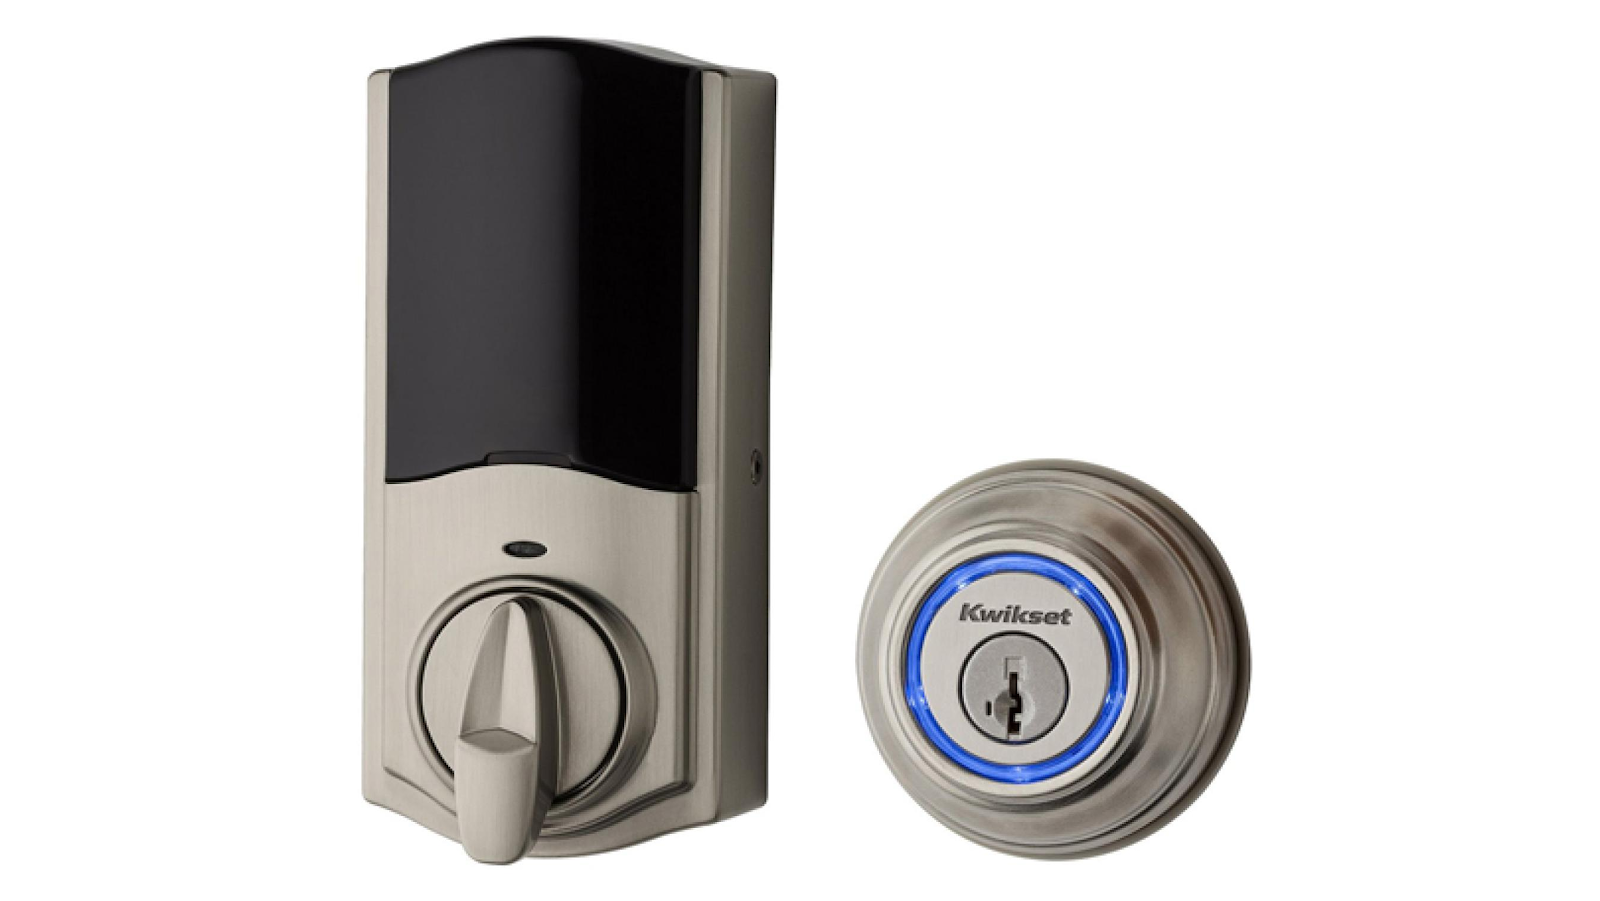 Image of a smart lock